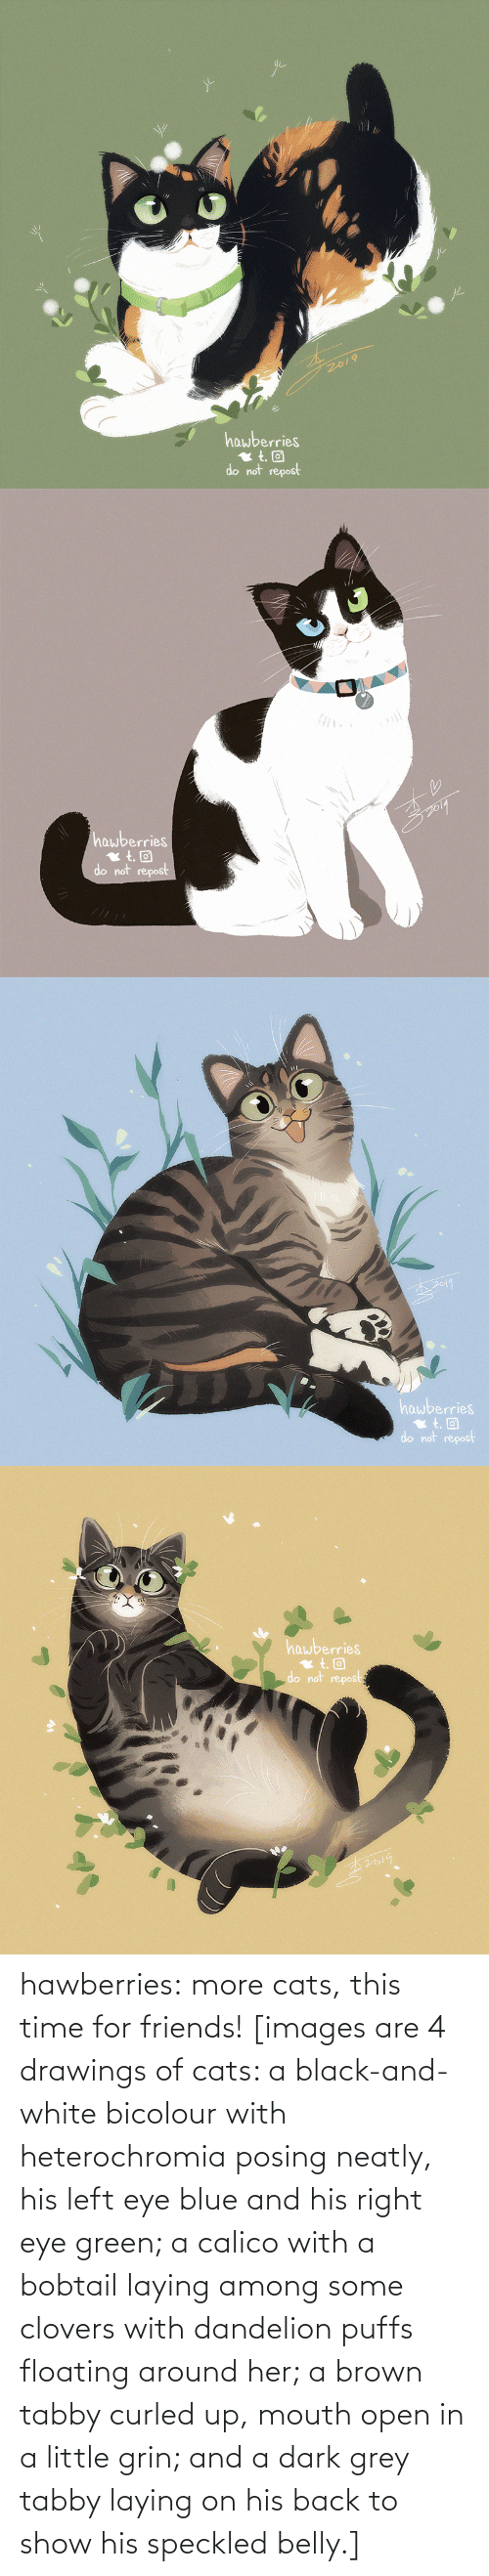 brown: 2019  hawberries  do not repost   hawberries  do not repost   hawberries  do not repost   hawberries  do not repost hawberries: more cats, this time for friends! [images are 4 drawings of cats: a black-and-white bicolour with heterochromia posing neatly, his left eye blue and his right eye green; a calico with a bobtail laying among some clovers with dandelion puffs floating around her; a brown tabby curled up, mouth open in a little grin; and a dark grey tabby laying on his back to show his speckled belly.]